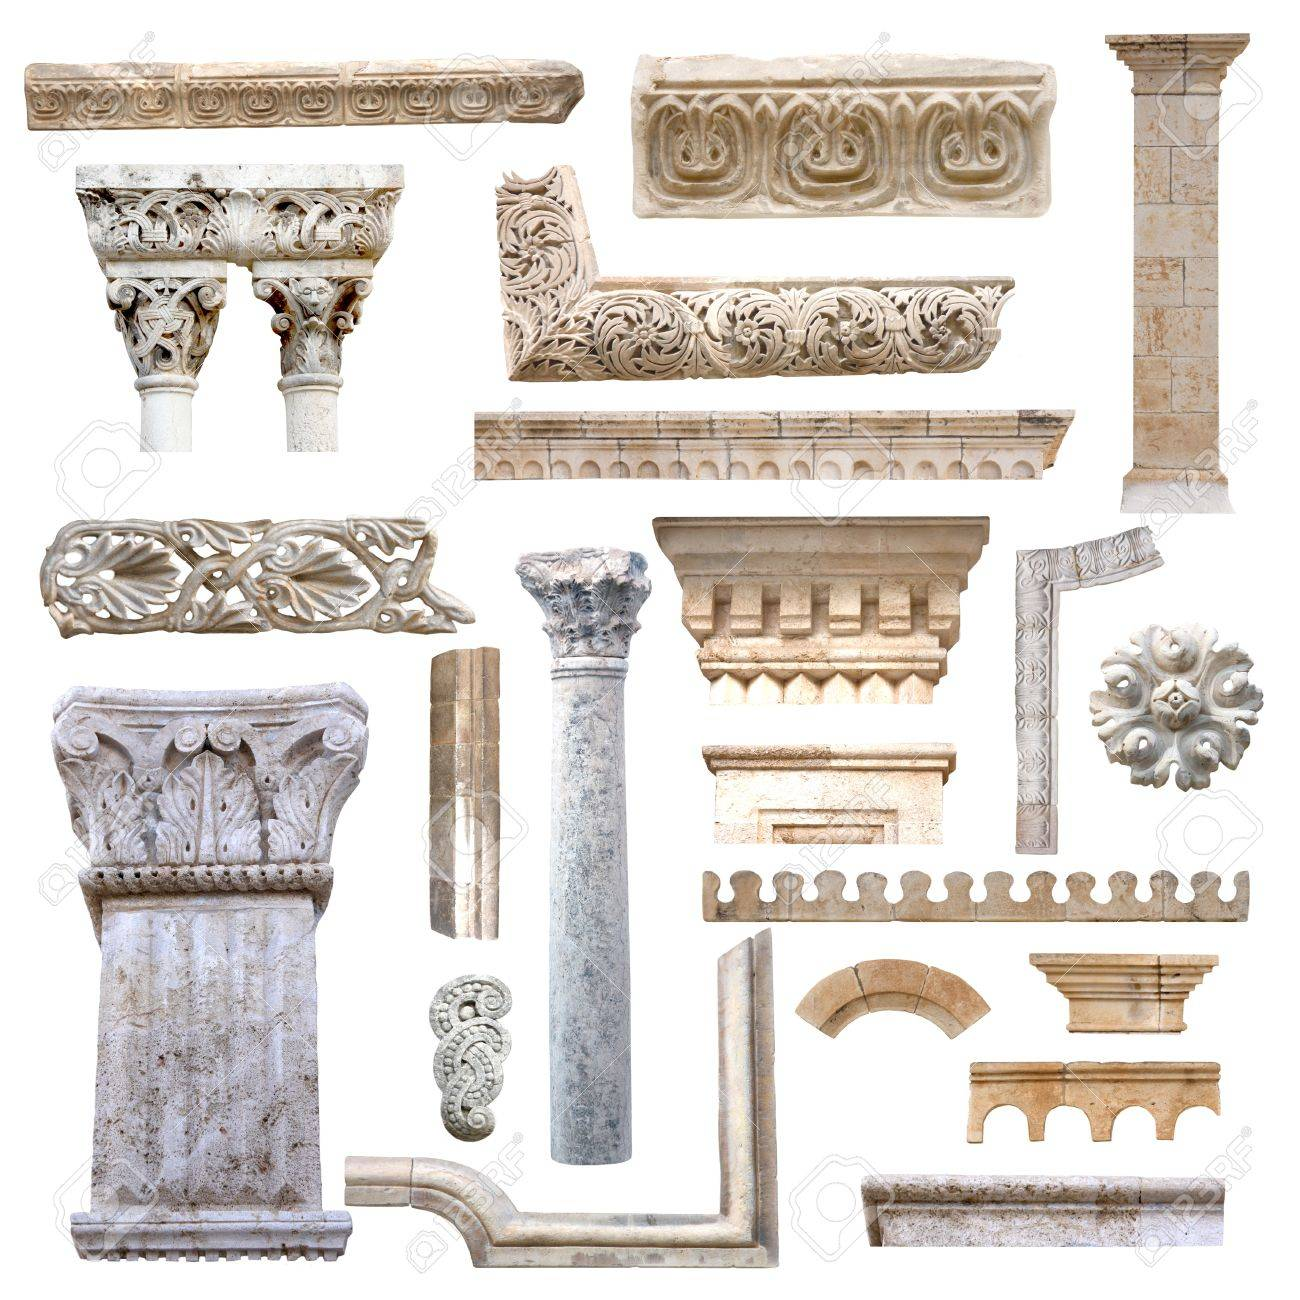 Set of isolated antique architecture details from stones Stock Photo - 11663657